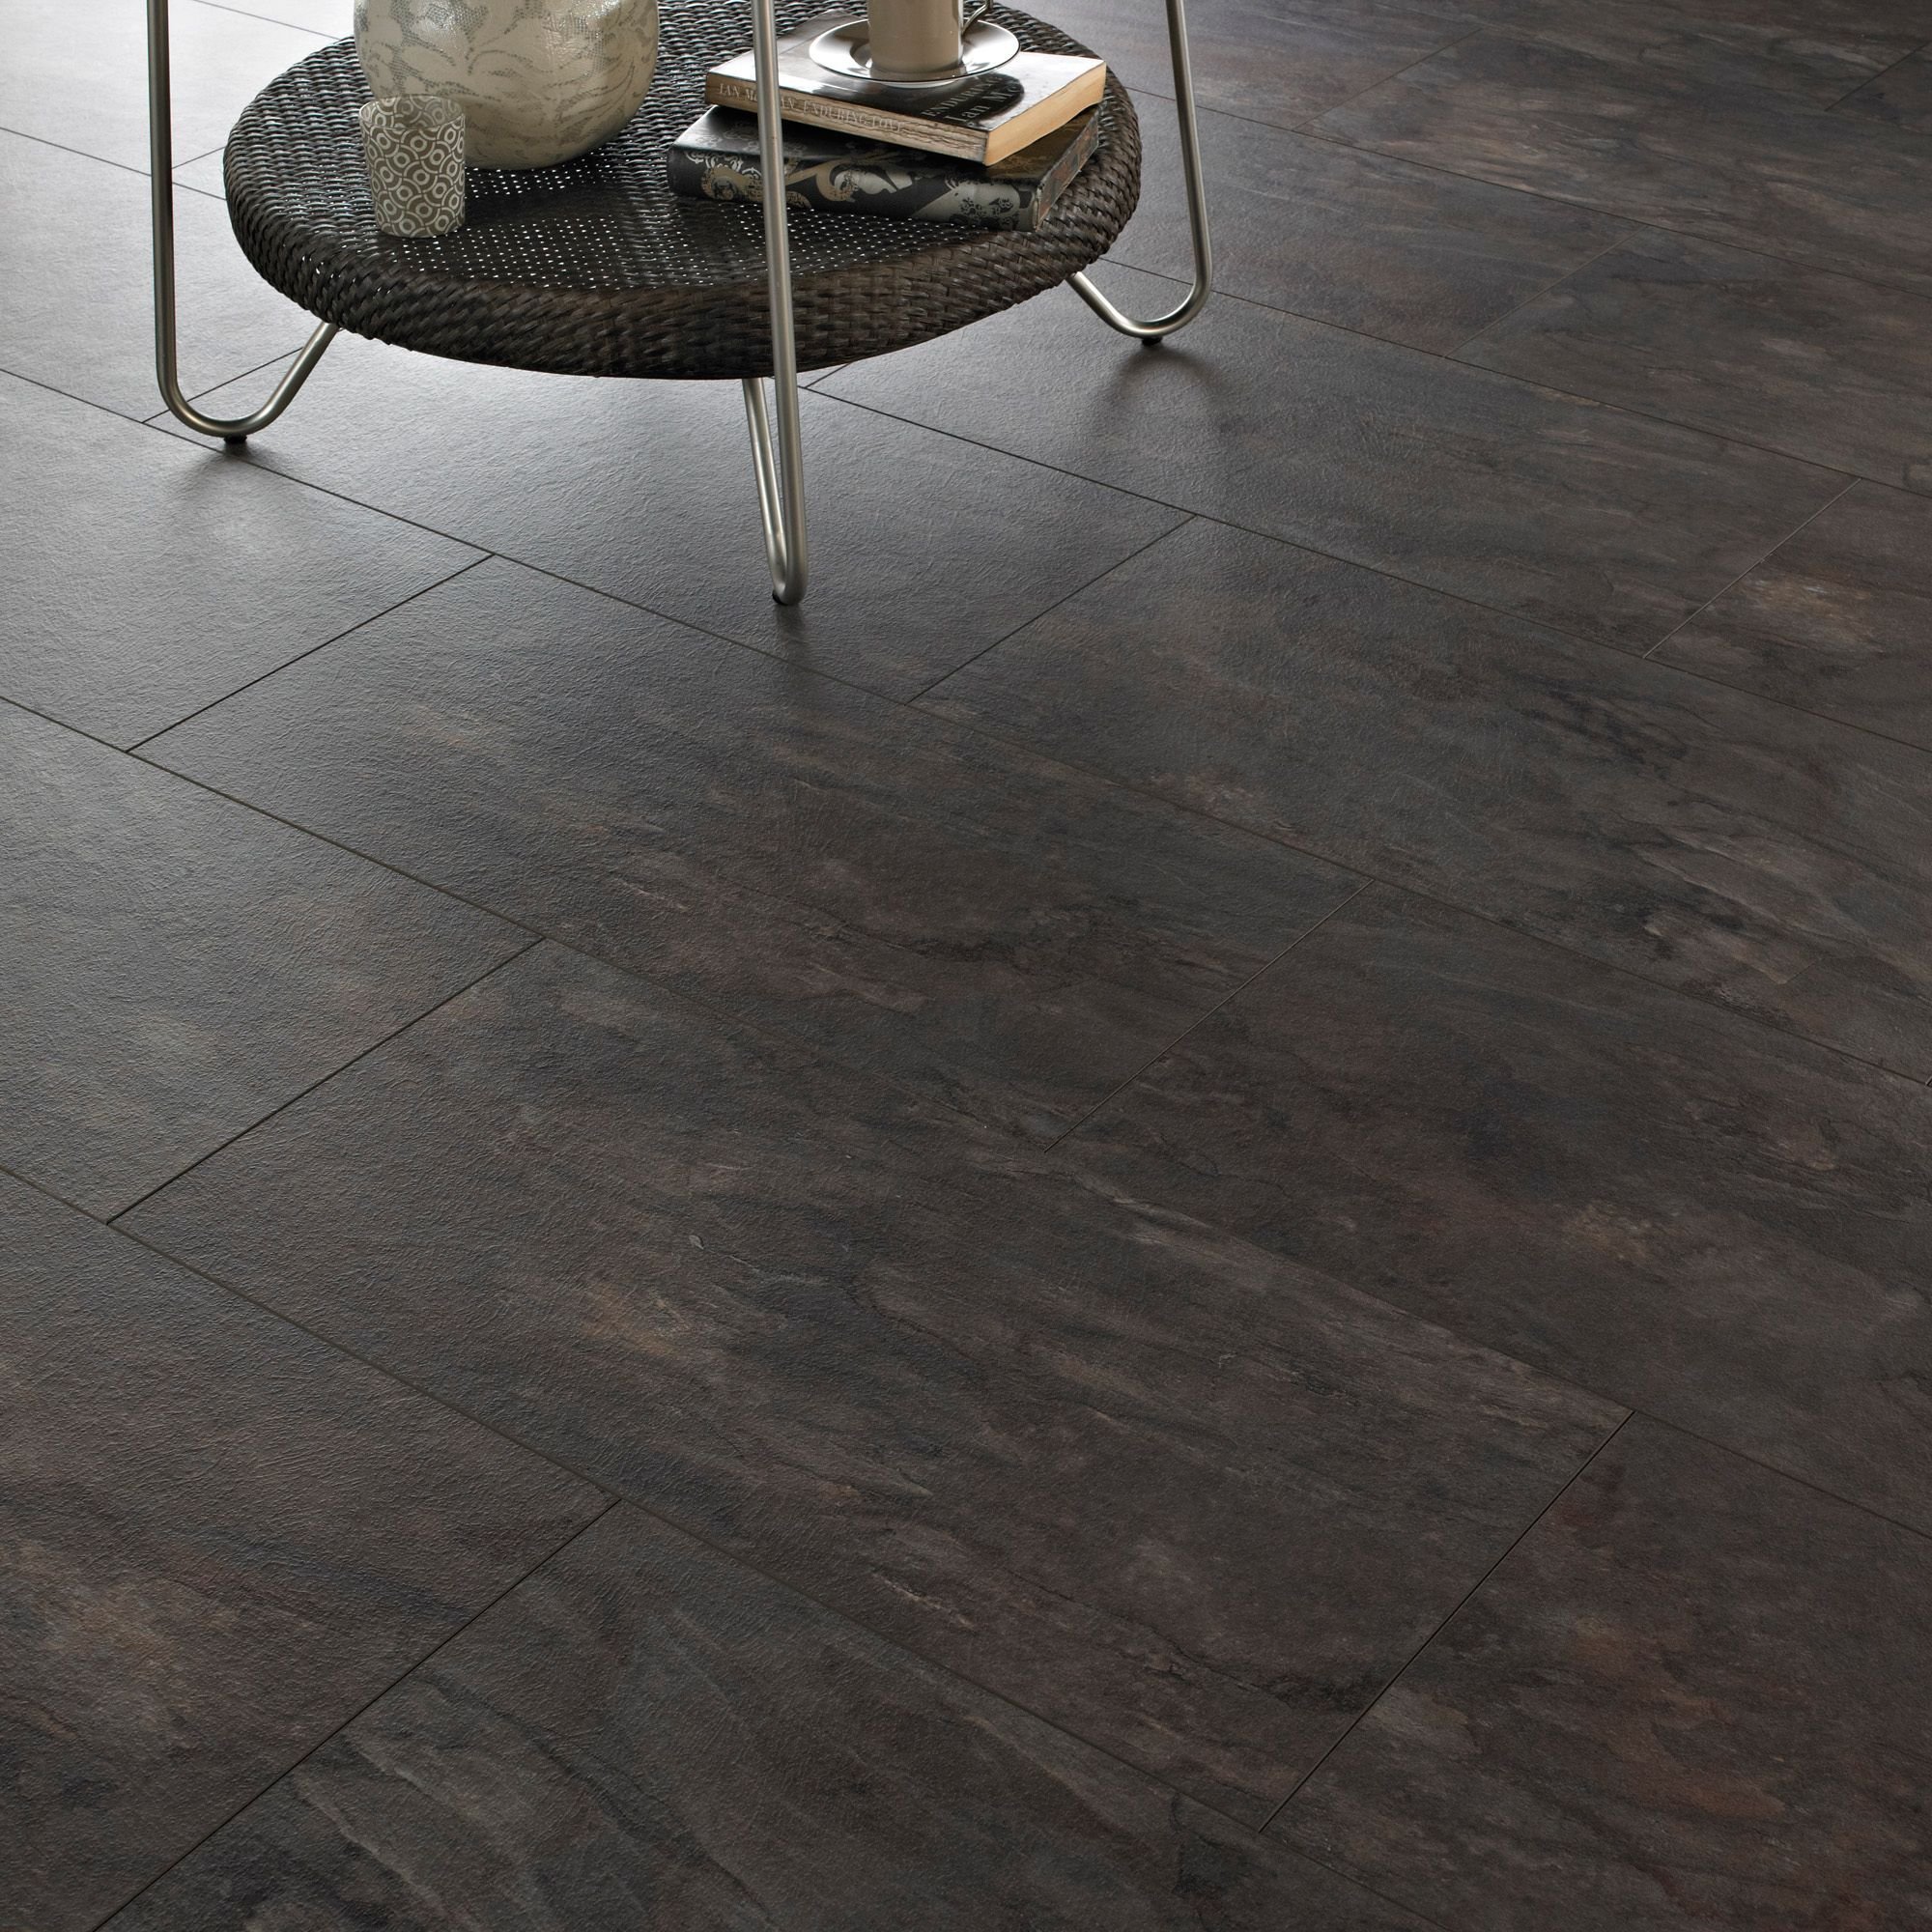 Intermezzo sicilian slate tile effect laminate flooring 205 m pack intermezzo grey slate effect laminate flooring 205 m pack departments diy at bq flooring tileslaminate dailygadgetfo Image collections